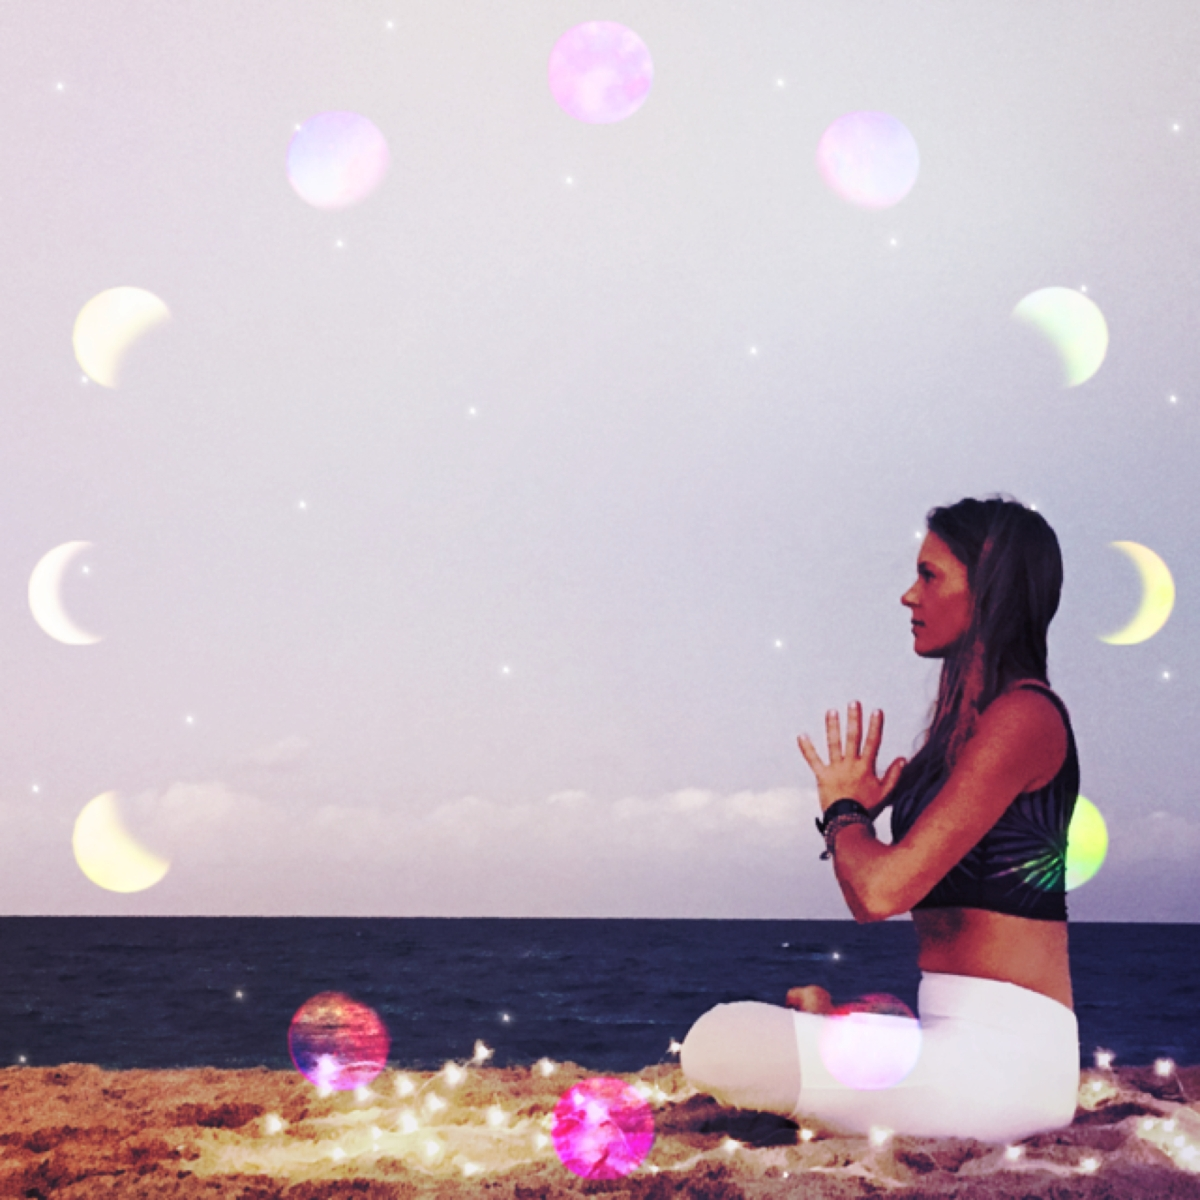 Rainbow-Love-Yoga-Girl-Blog-Post-Energy-Meditation